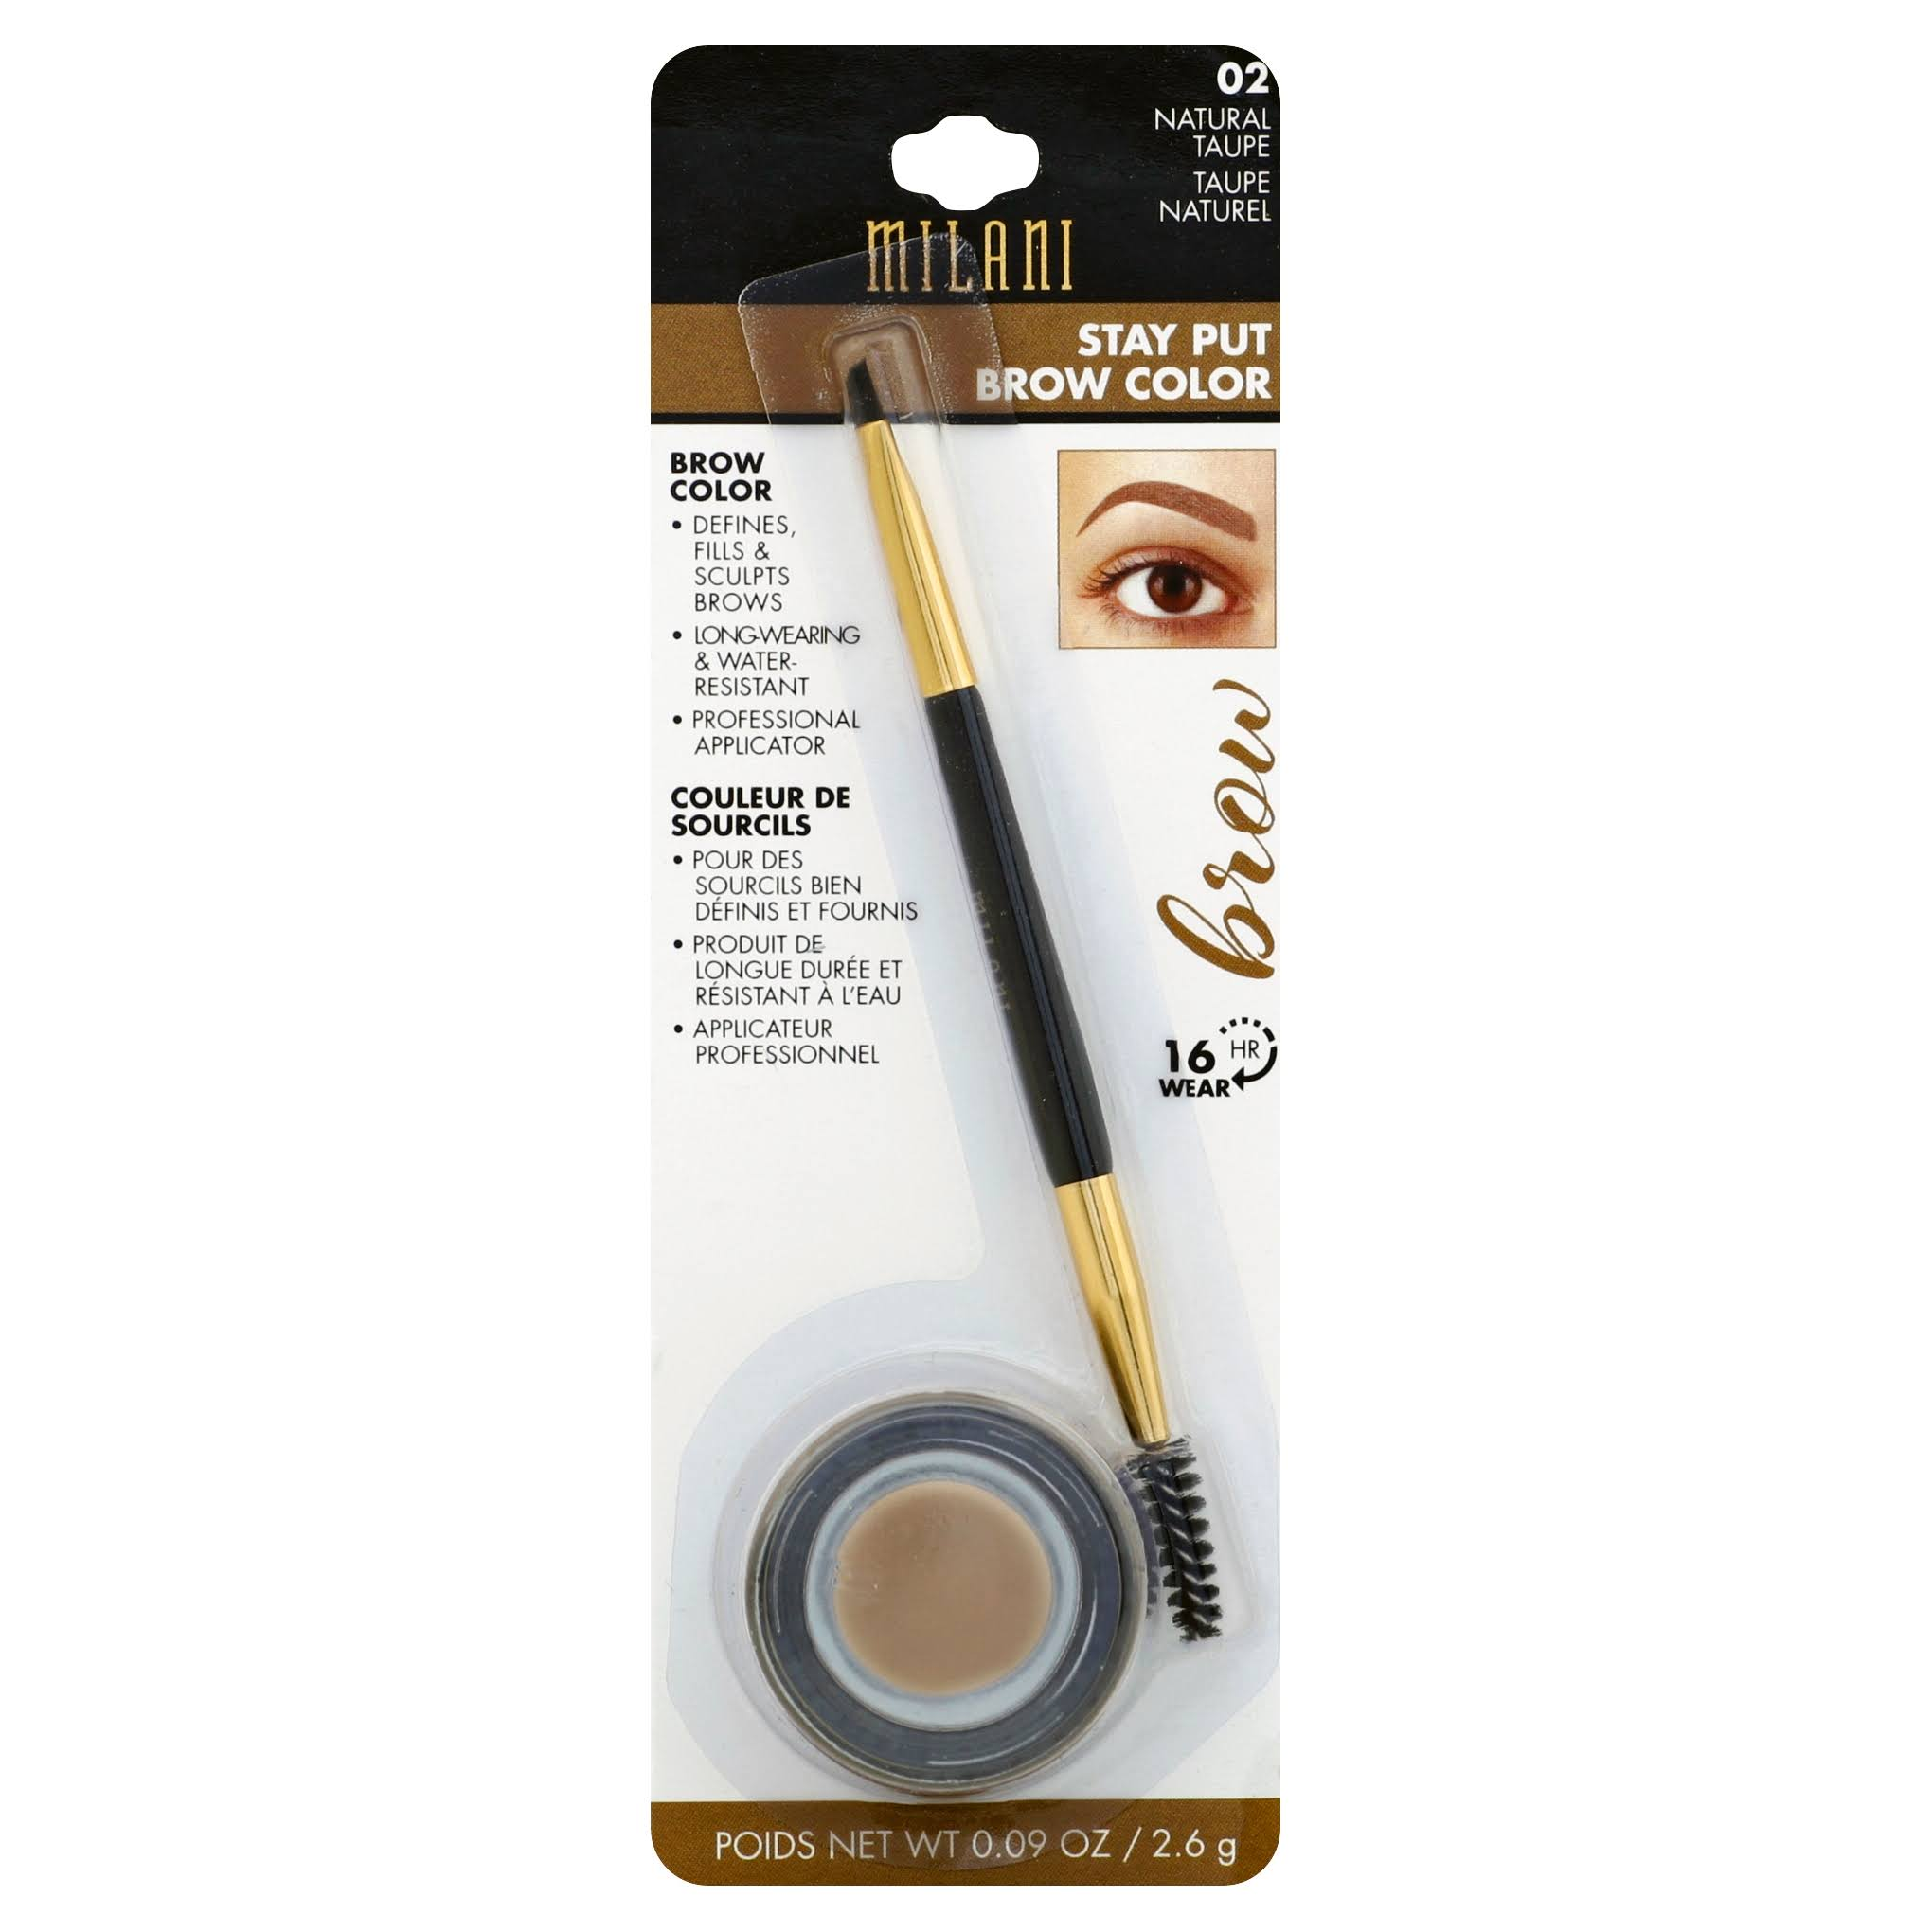 Milani Stay Put Brow Color - 02 Natural Taupe, 0.09oz